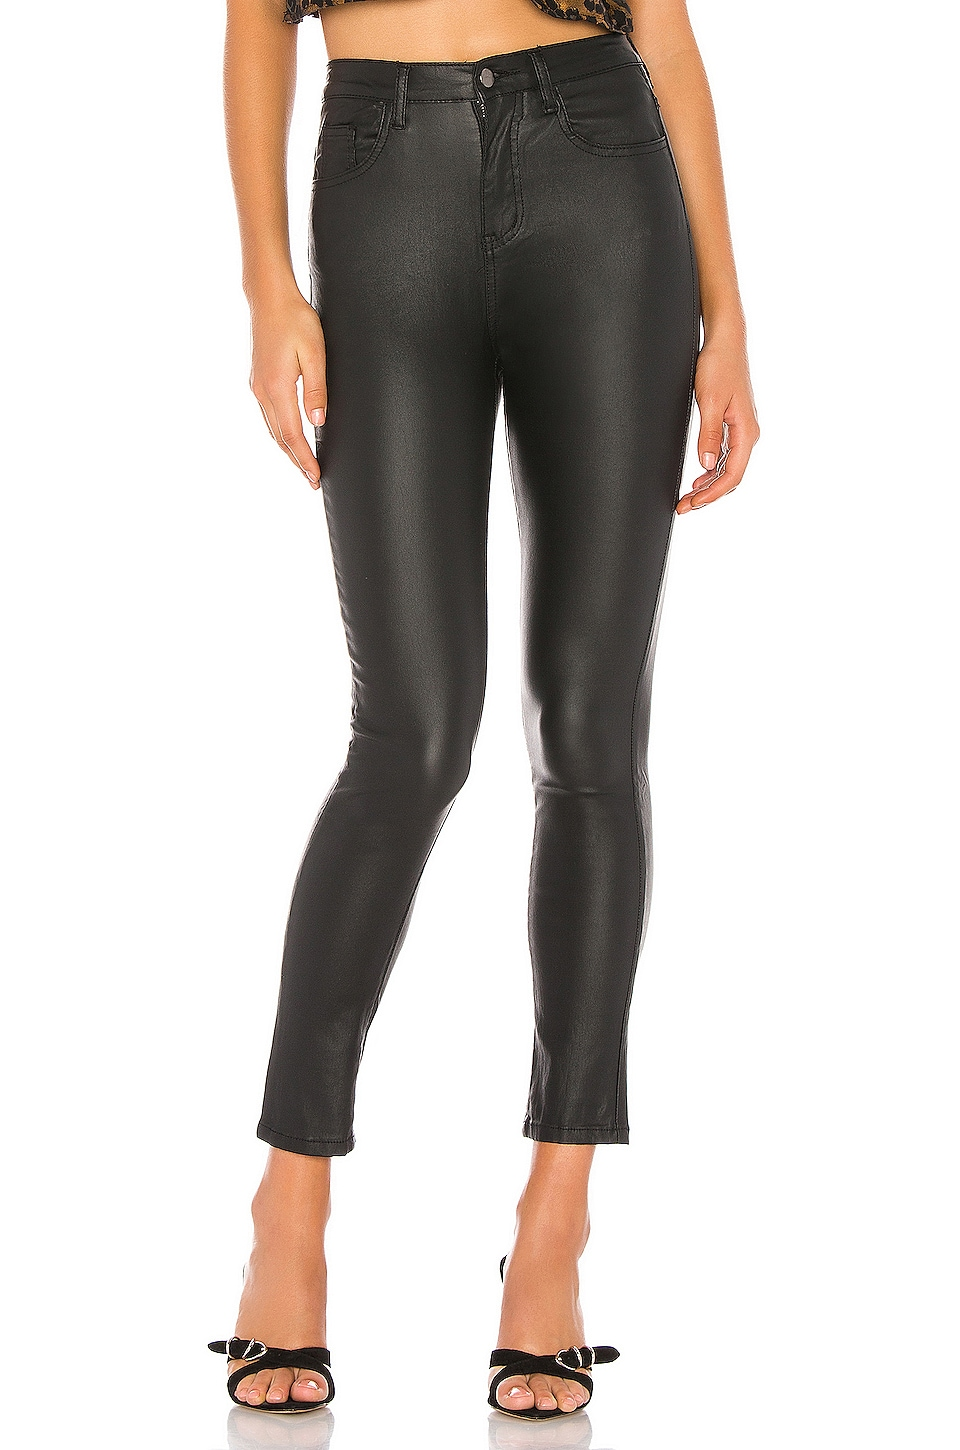 superdown Deandra Coated Faux Leather Pant in Black